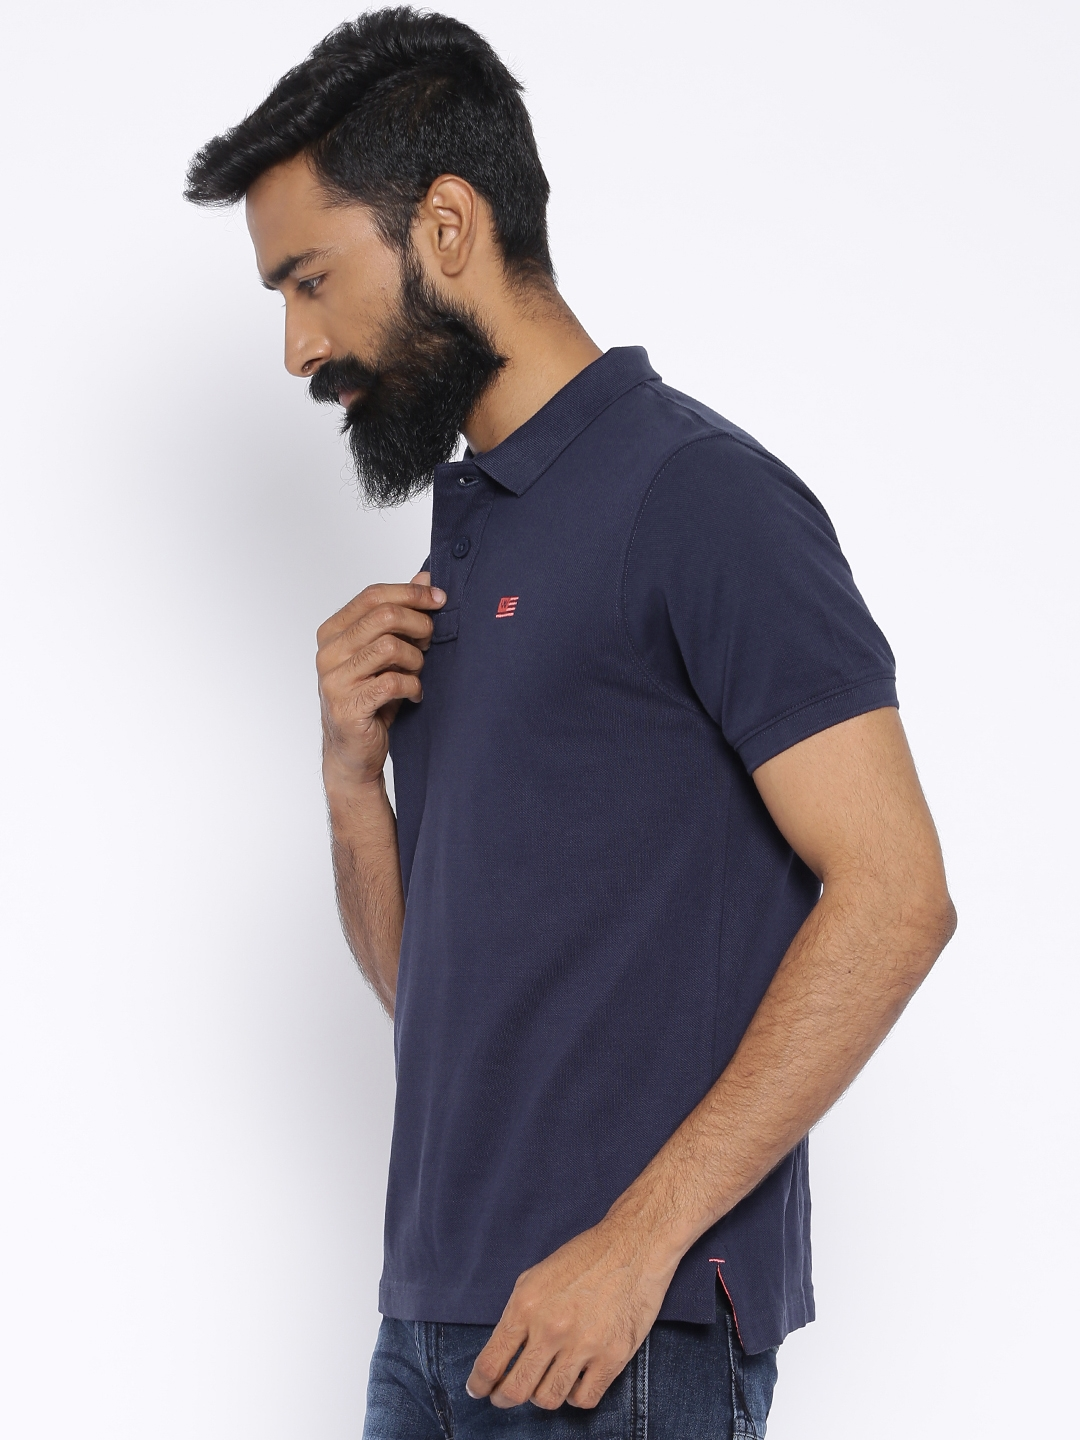 1a802bce Buy Wrangler Navy Polo T Shirt - Tshirts for Men 1436743 | Myntra